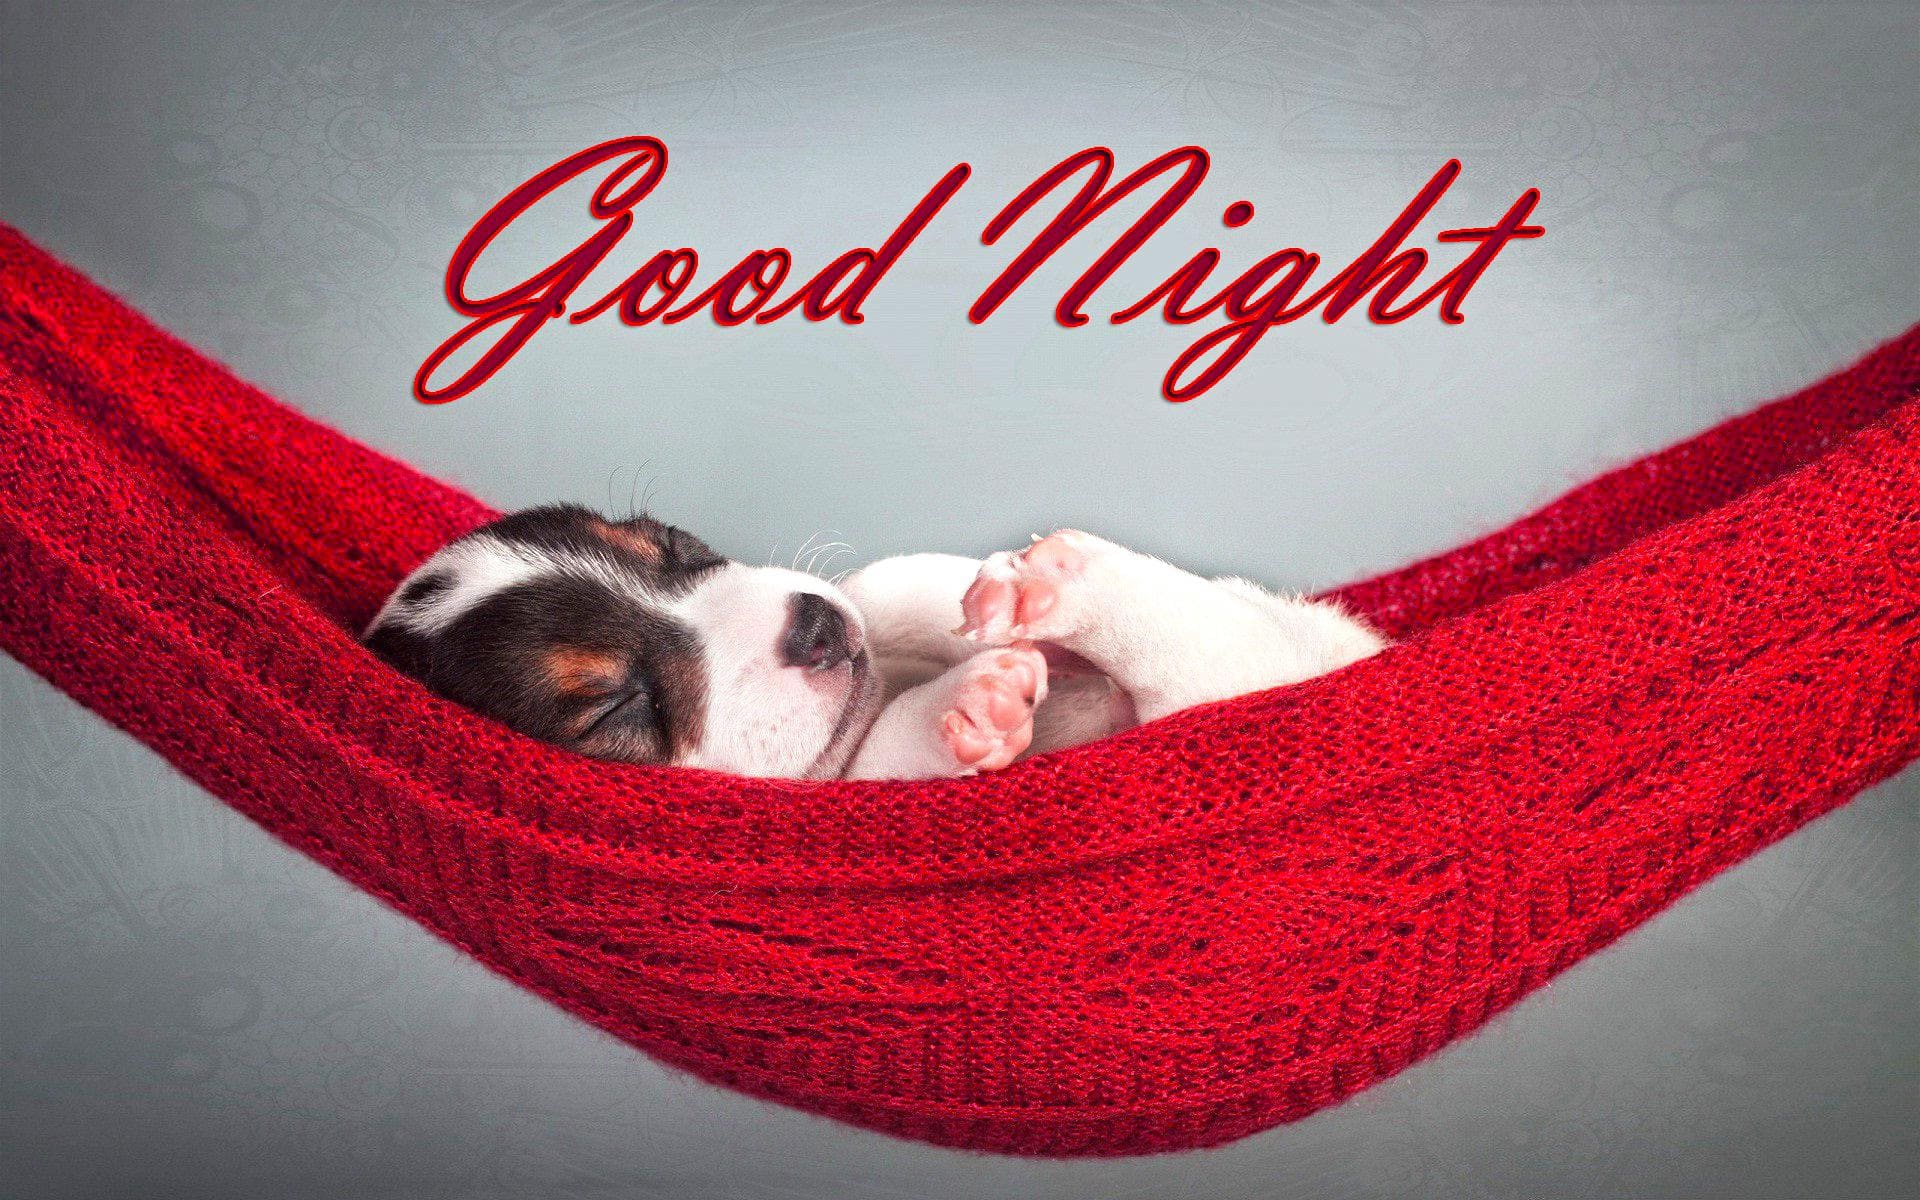 Latest 100 Good Night Text Messages, Wishes & Quotes for Him